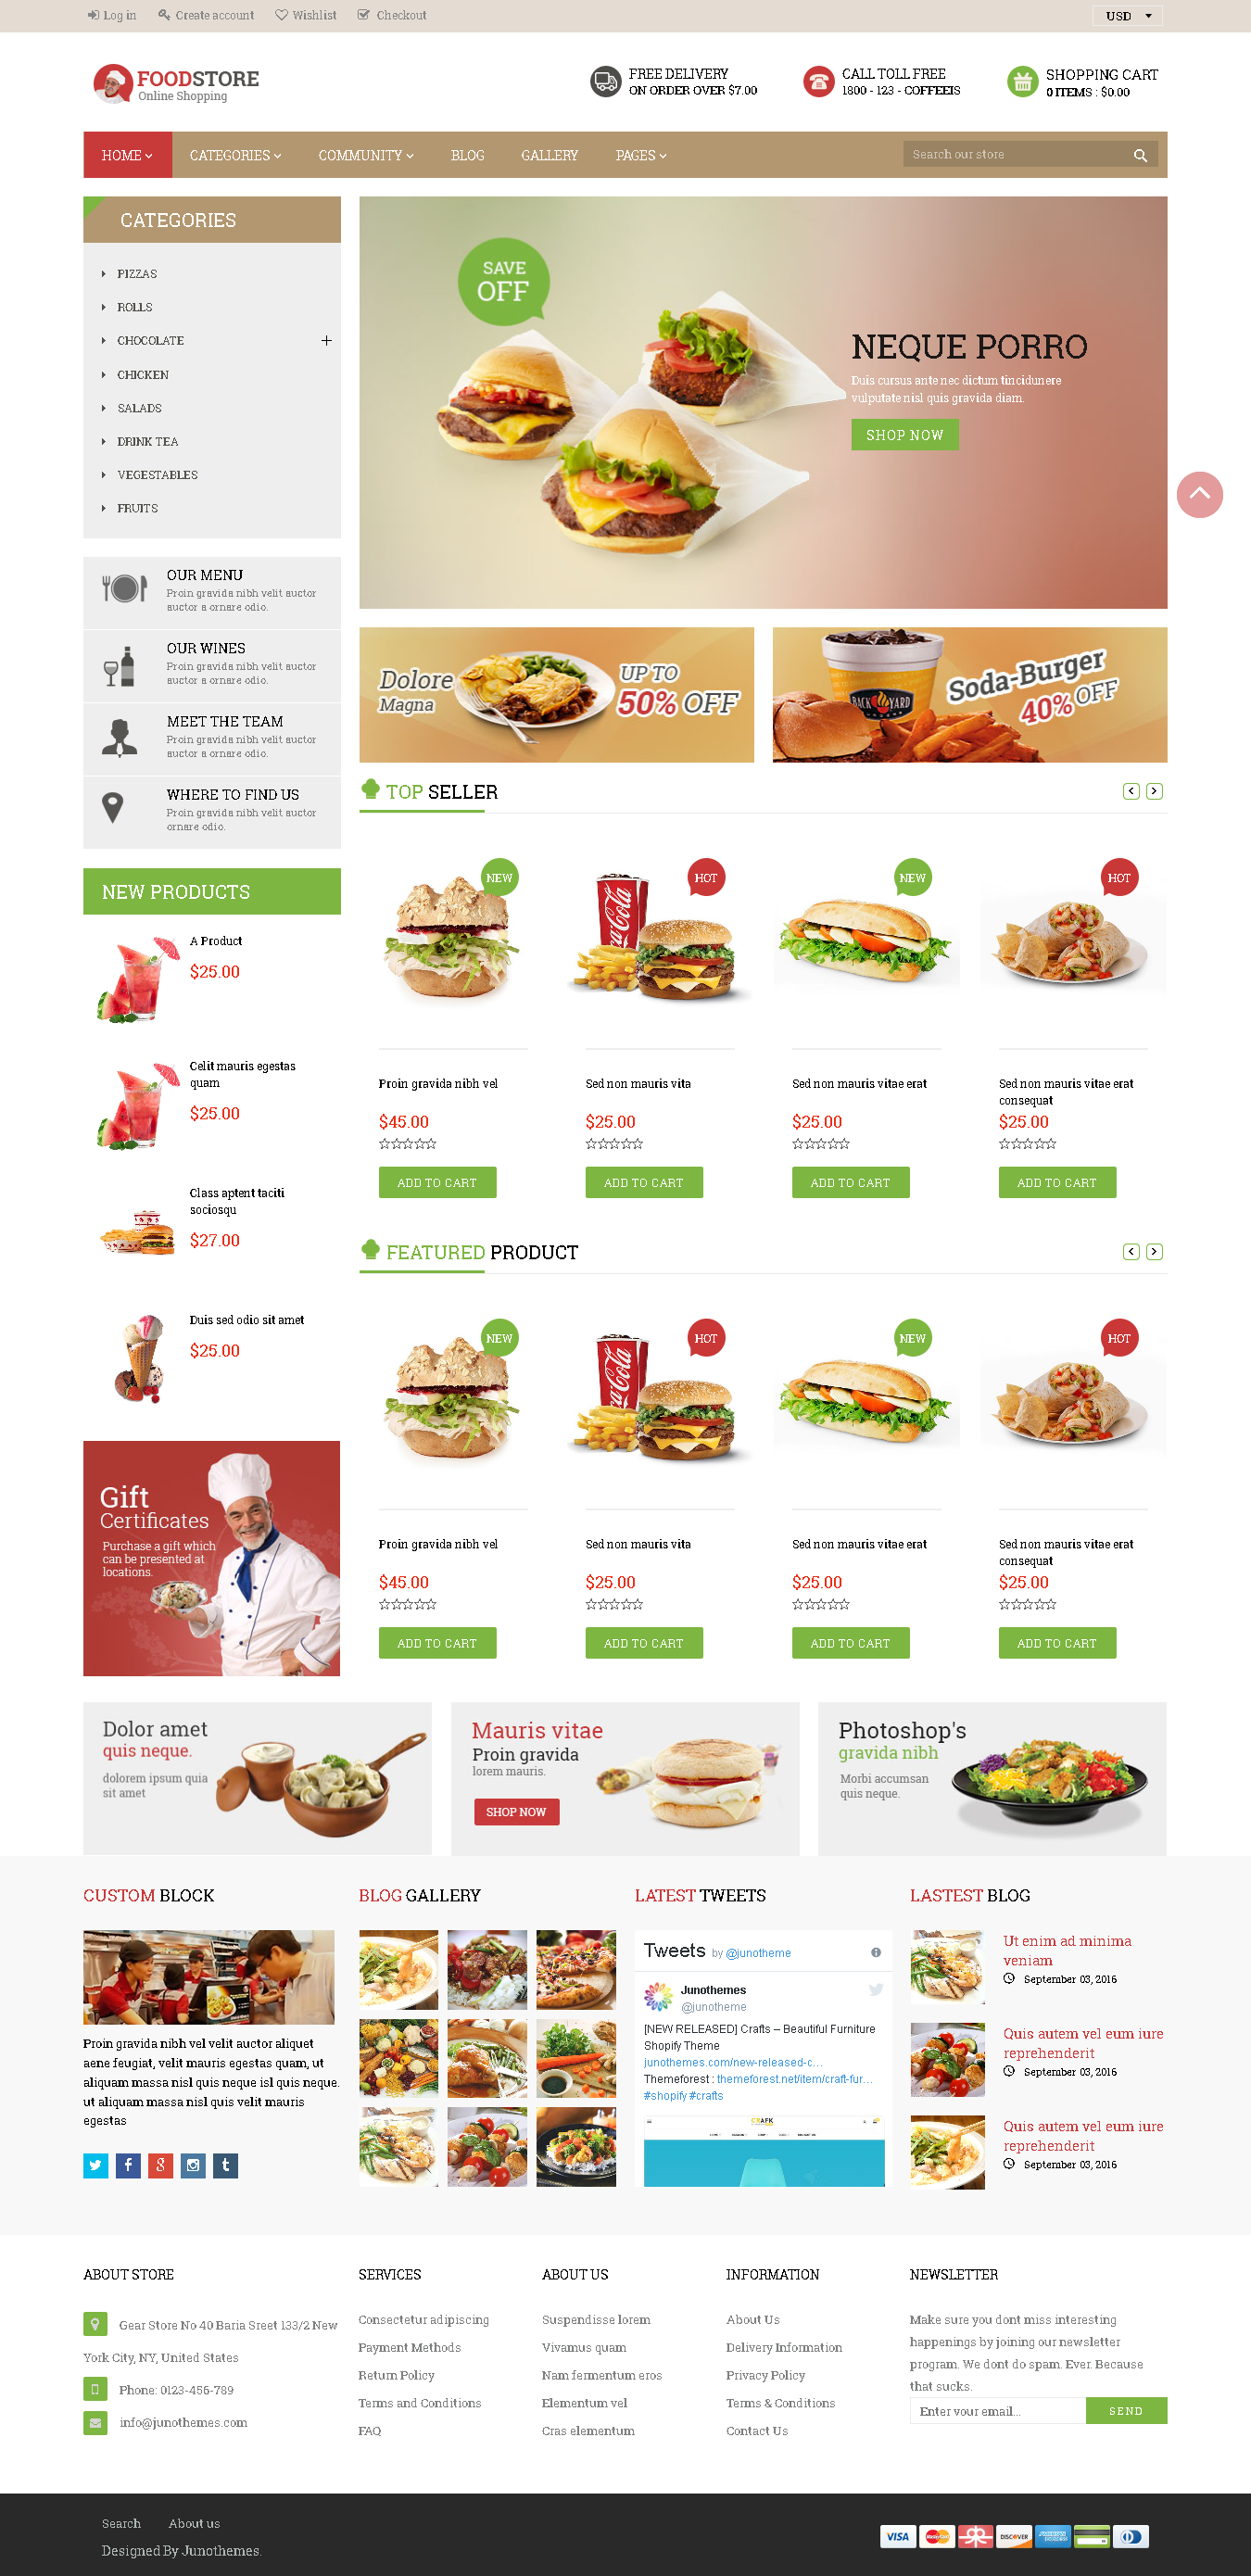 5 Best SHOPIFY Premium Themes Collection for Food Store 2017 - Foodstore Responsive Shopify Theme